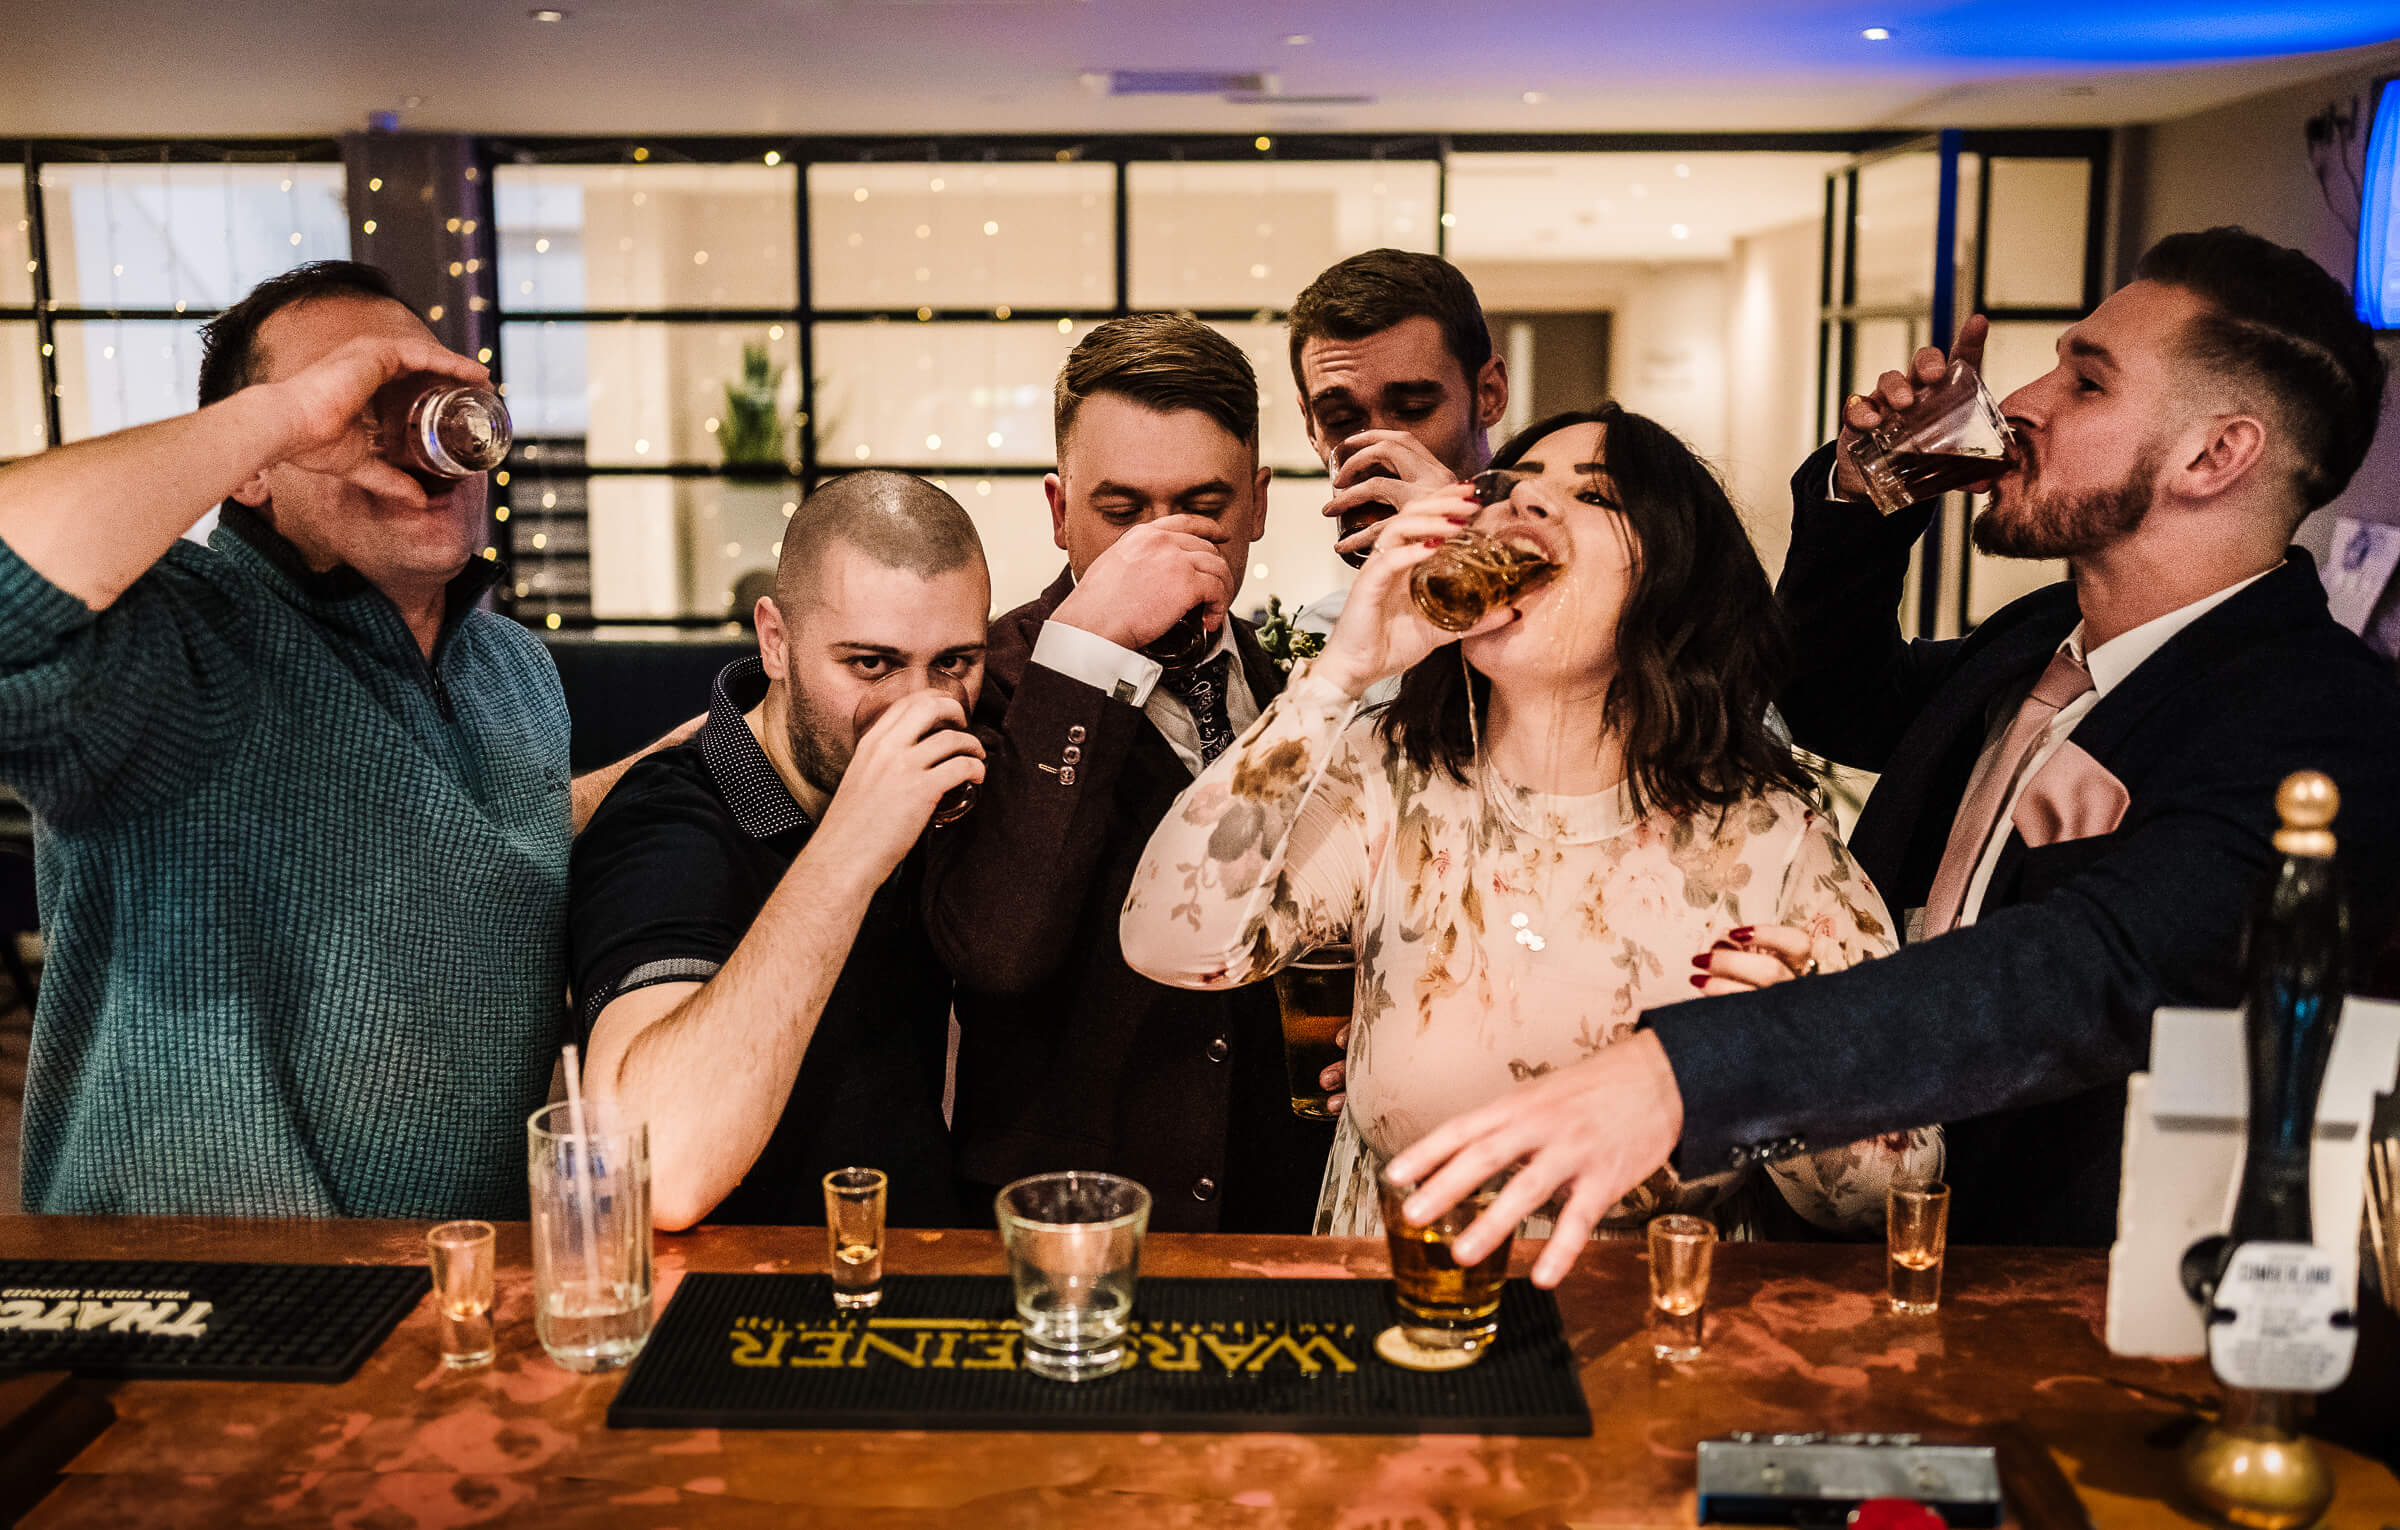 Groom and guests having shots in bar